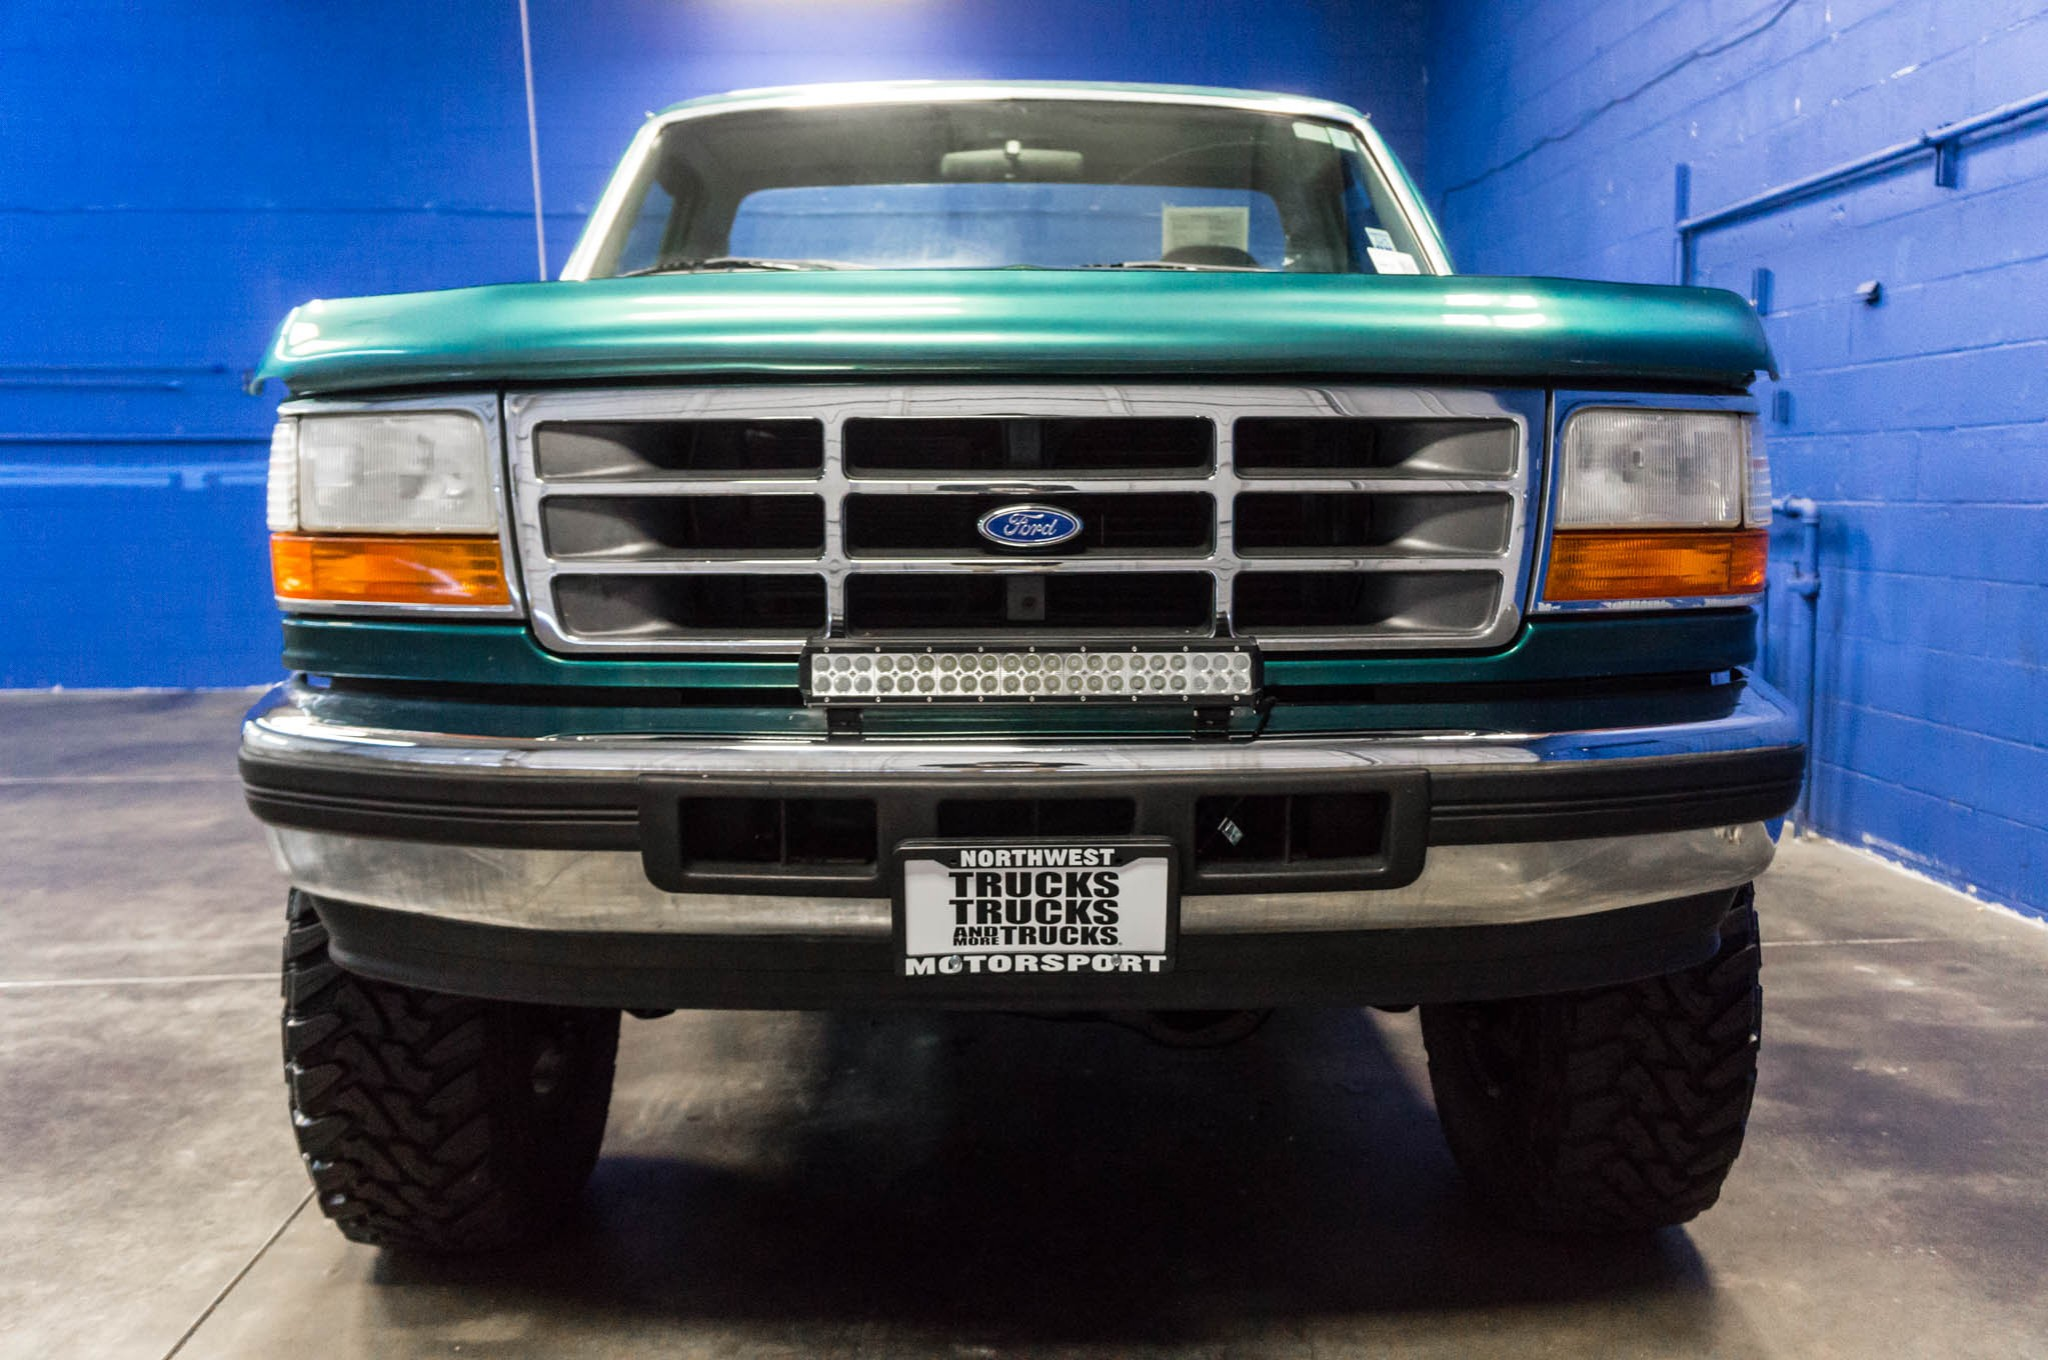 Diesel Trucks For Sale Near Me >> Used Lifted 1996 Ford F-150 XLT 4x4 Truck For Sale - 34815